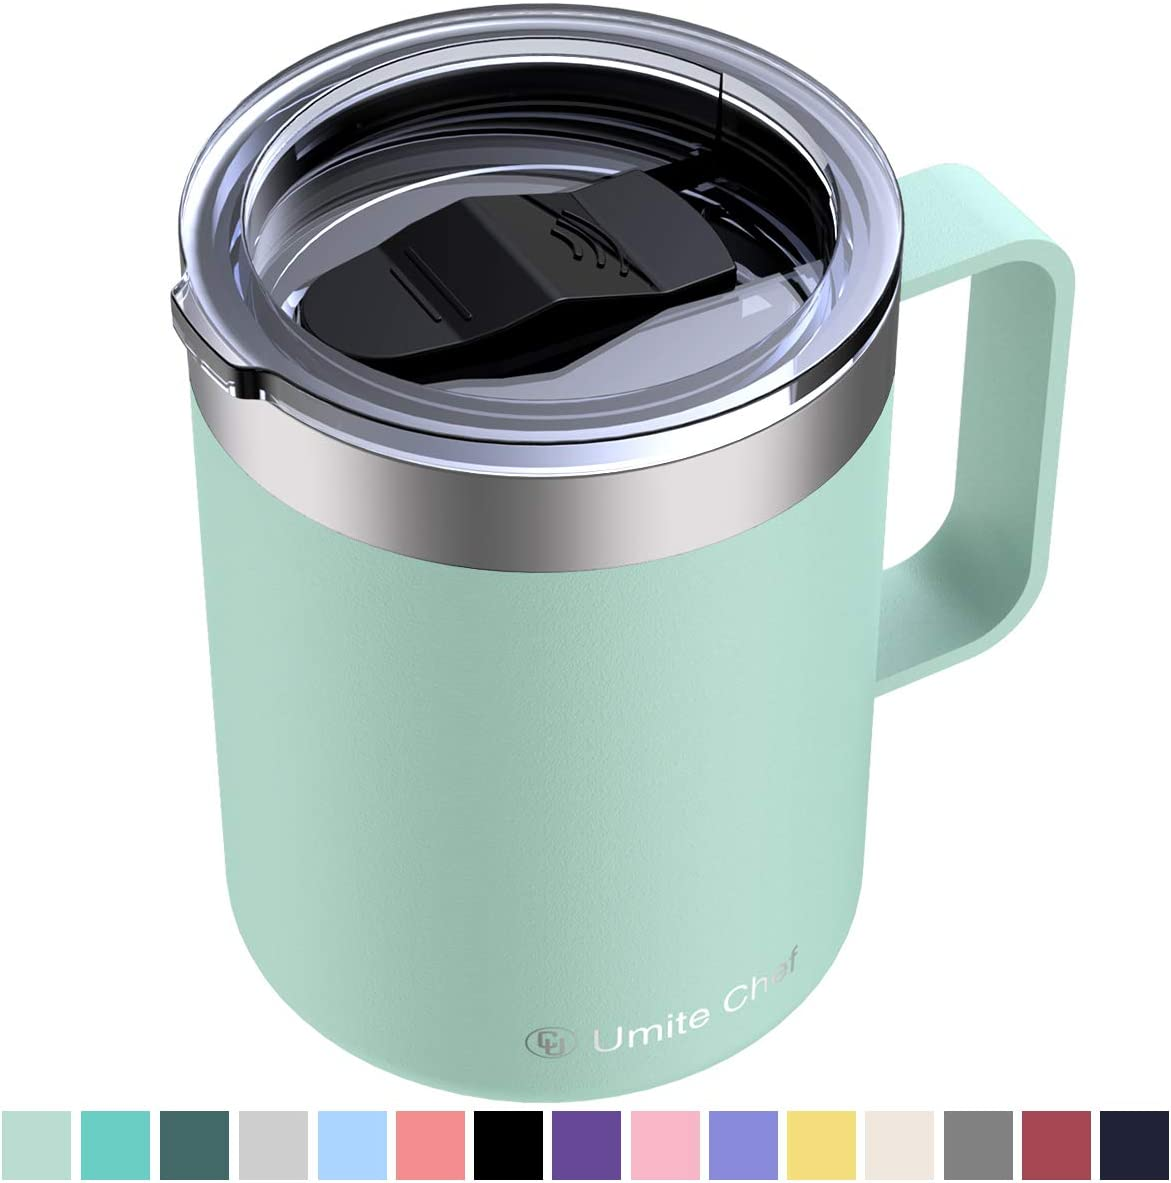 Umite Chef Stainless Steel Insulated Coffee Mug Tumbler with Handle, 12 oz Double Wall Vacuum Tumbler Cup with Lid Insulated Camping Tea Flask for Hot & Cold Drinks(Tiffany Blue)